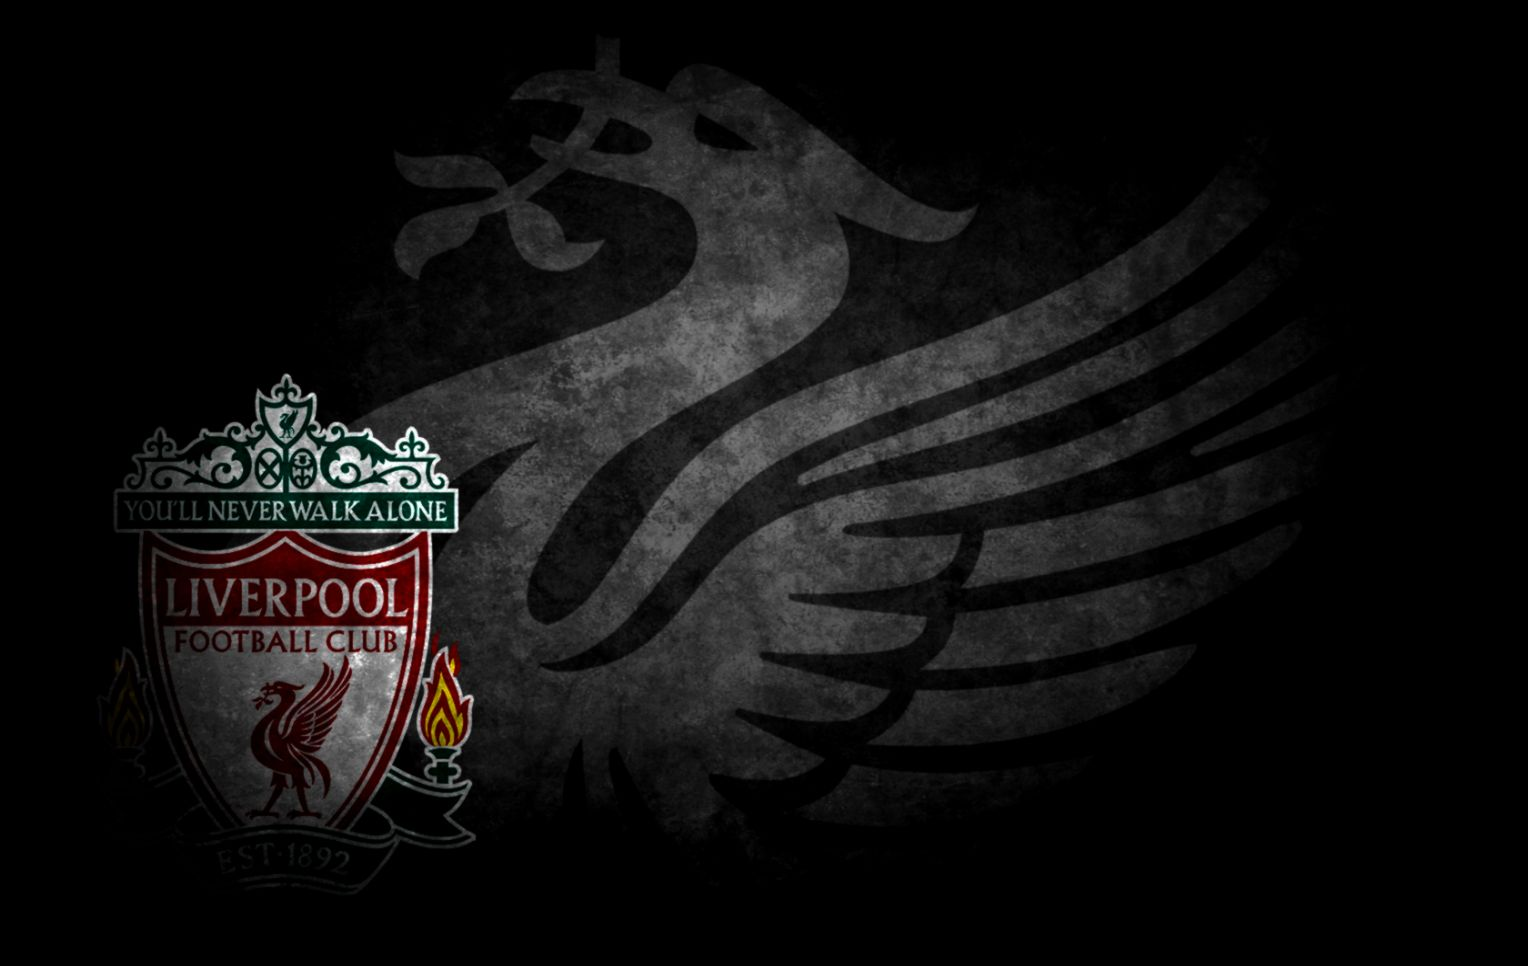 Liverpool Fc Wallpaper Hd Posted By Samantha Tremblay